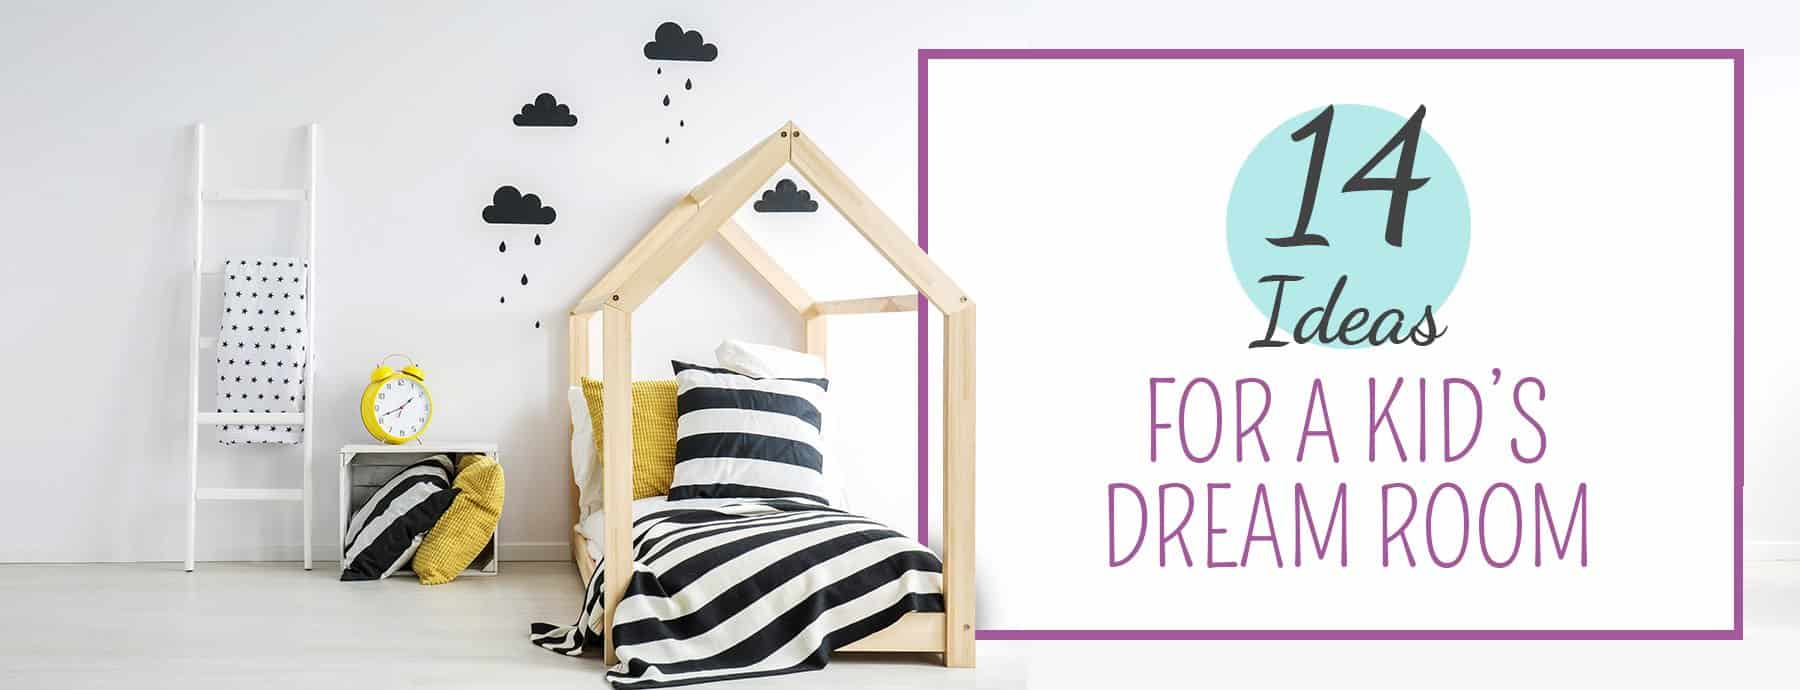 14 Ideas For A Dream Room You Wish You Had As A Kid Nursery Kid S Room Décor Ideas My Sleepy Monkey